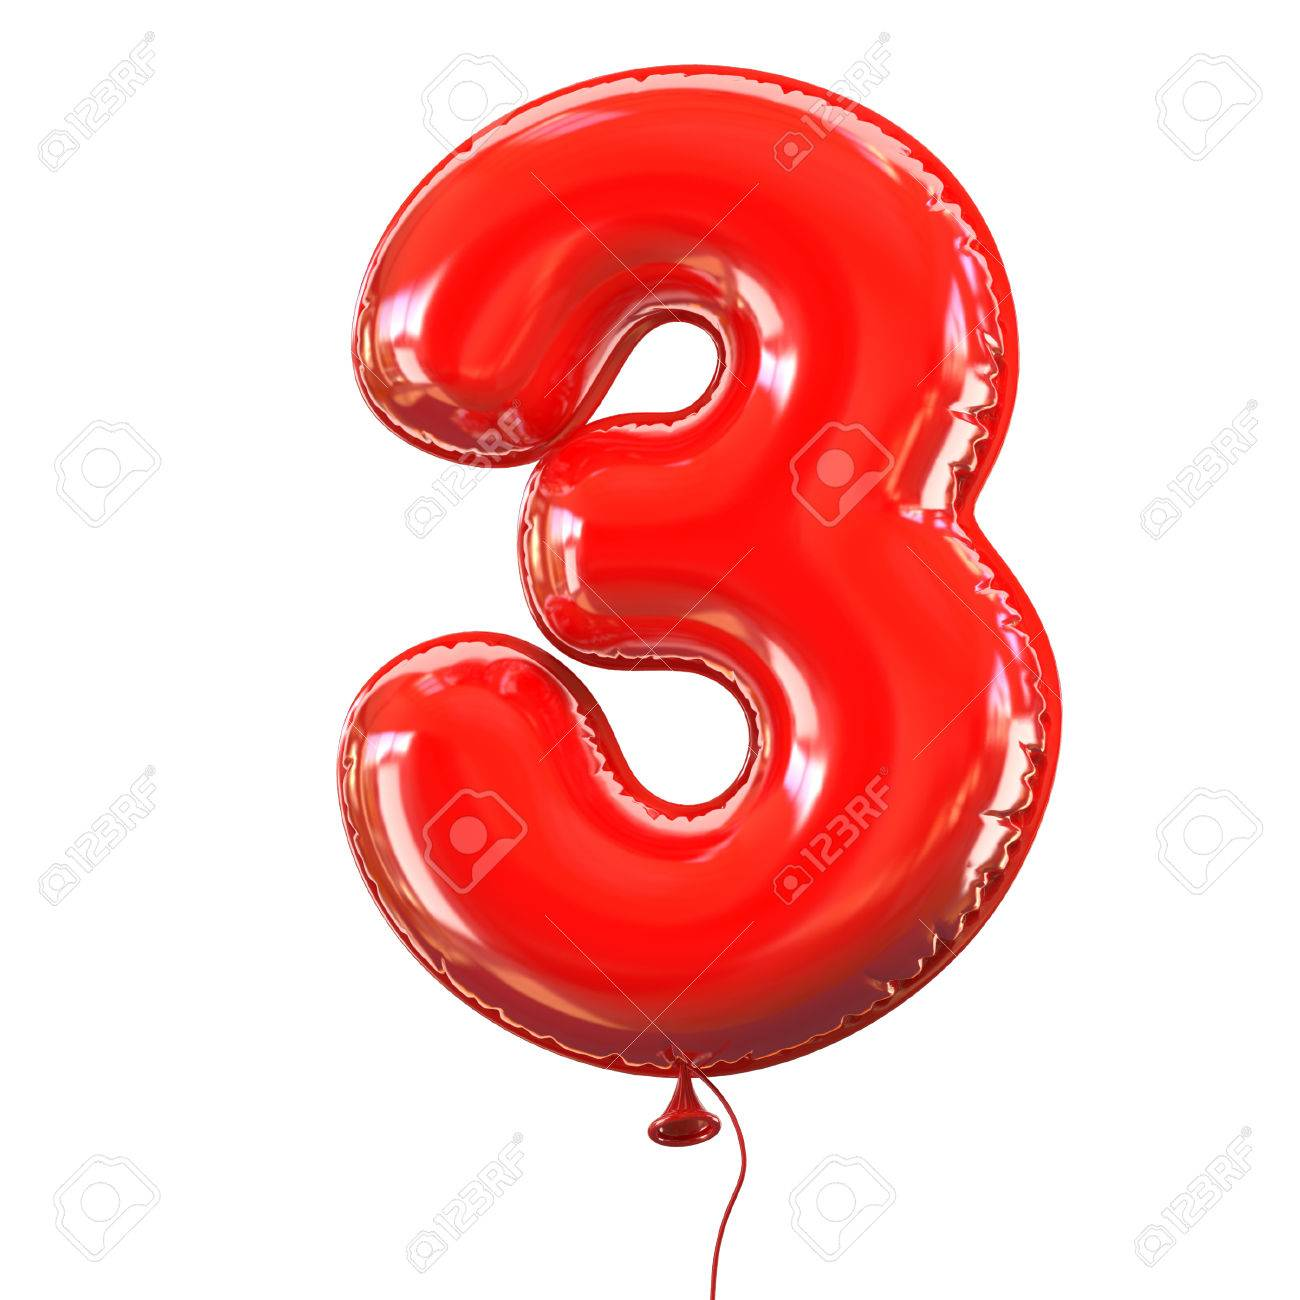 number five - 3 balloon font - 46401156